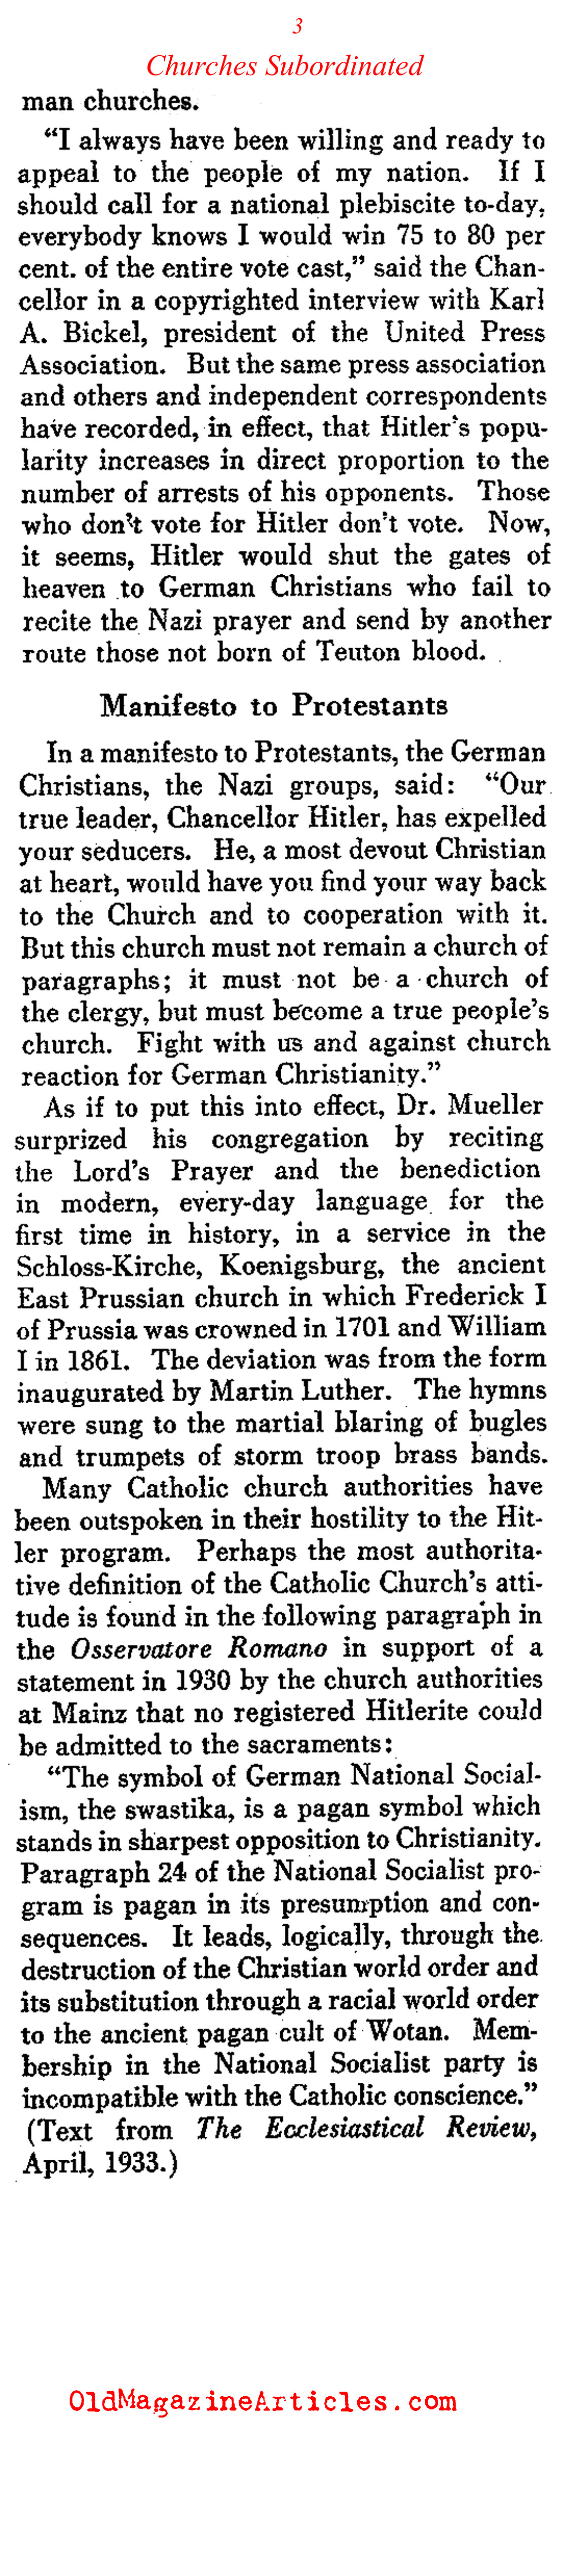 Protestant Churches Forced into Submission (Literary Digest, 1933)